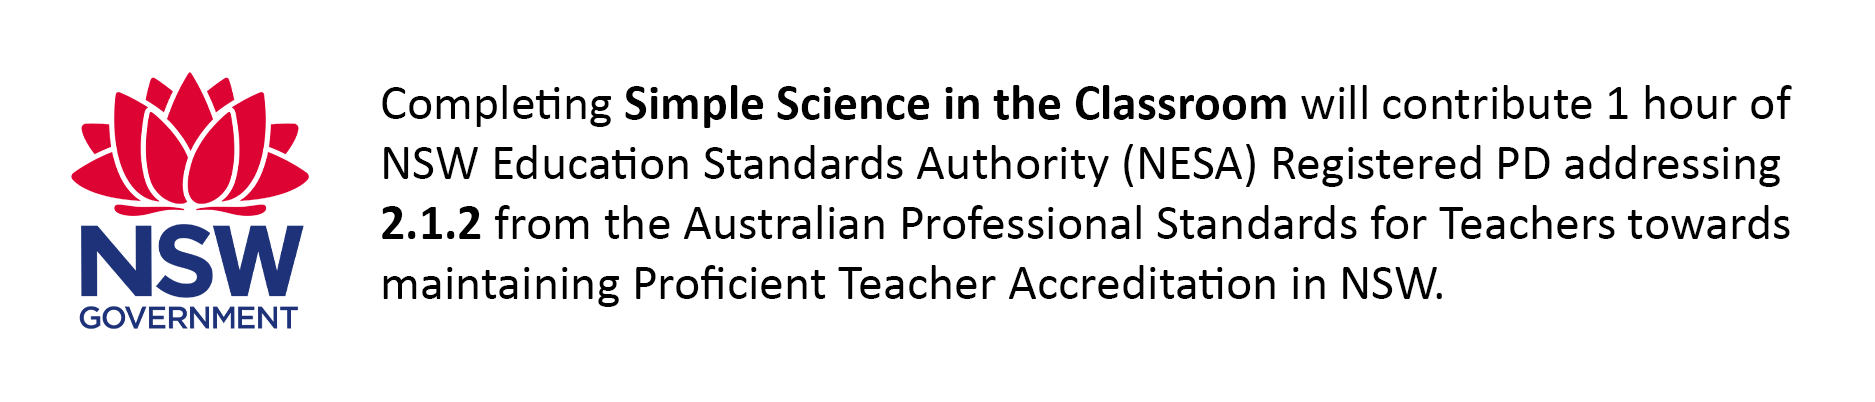 Completing Simple Science in the Classroom will contribute 1 hour of NSW Education Standards Authority (NESA) Registered PD addressing 2.1.2 from the Australian Professional Standards for Teachers towards maintaining Proficient Teacher Accreditation in NSW.